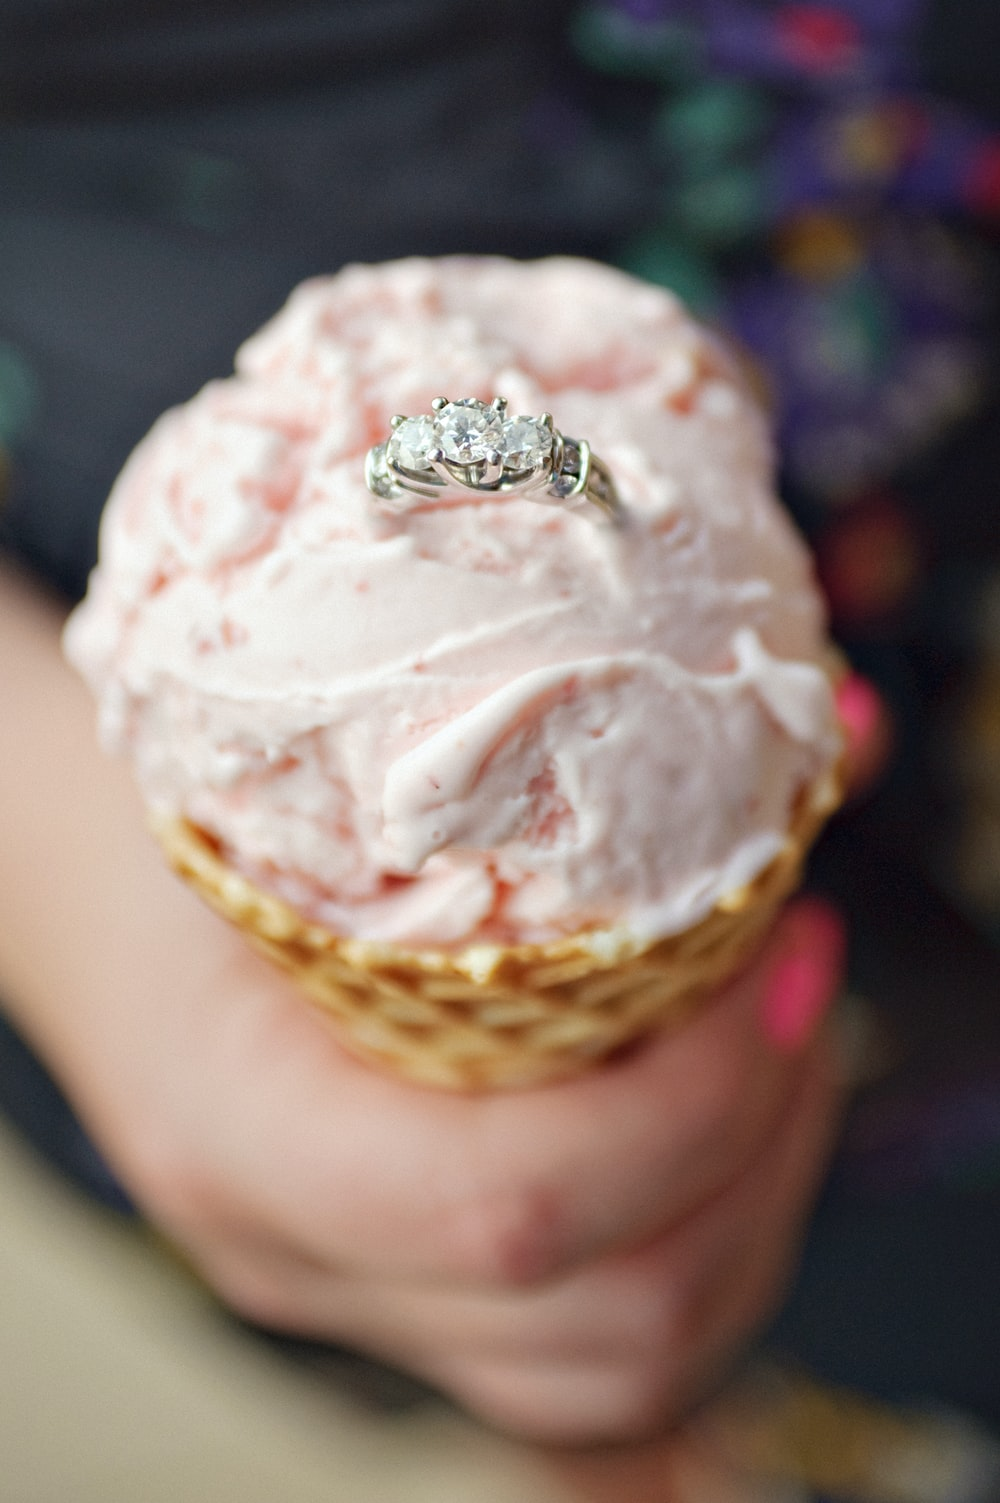 silver-colored ring on ice cream